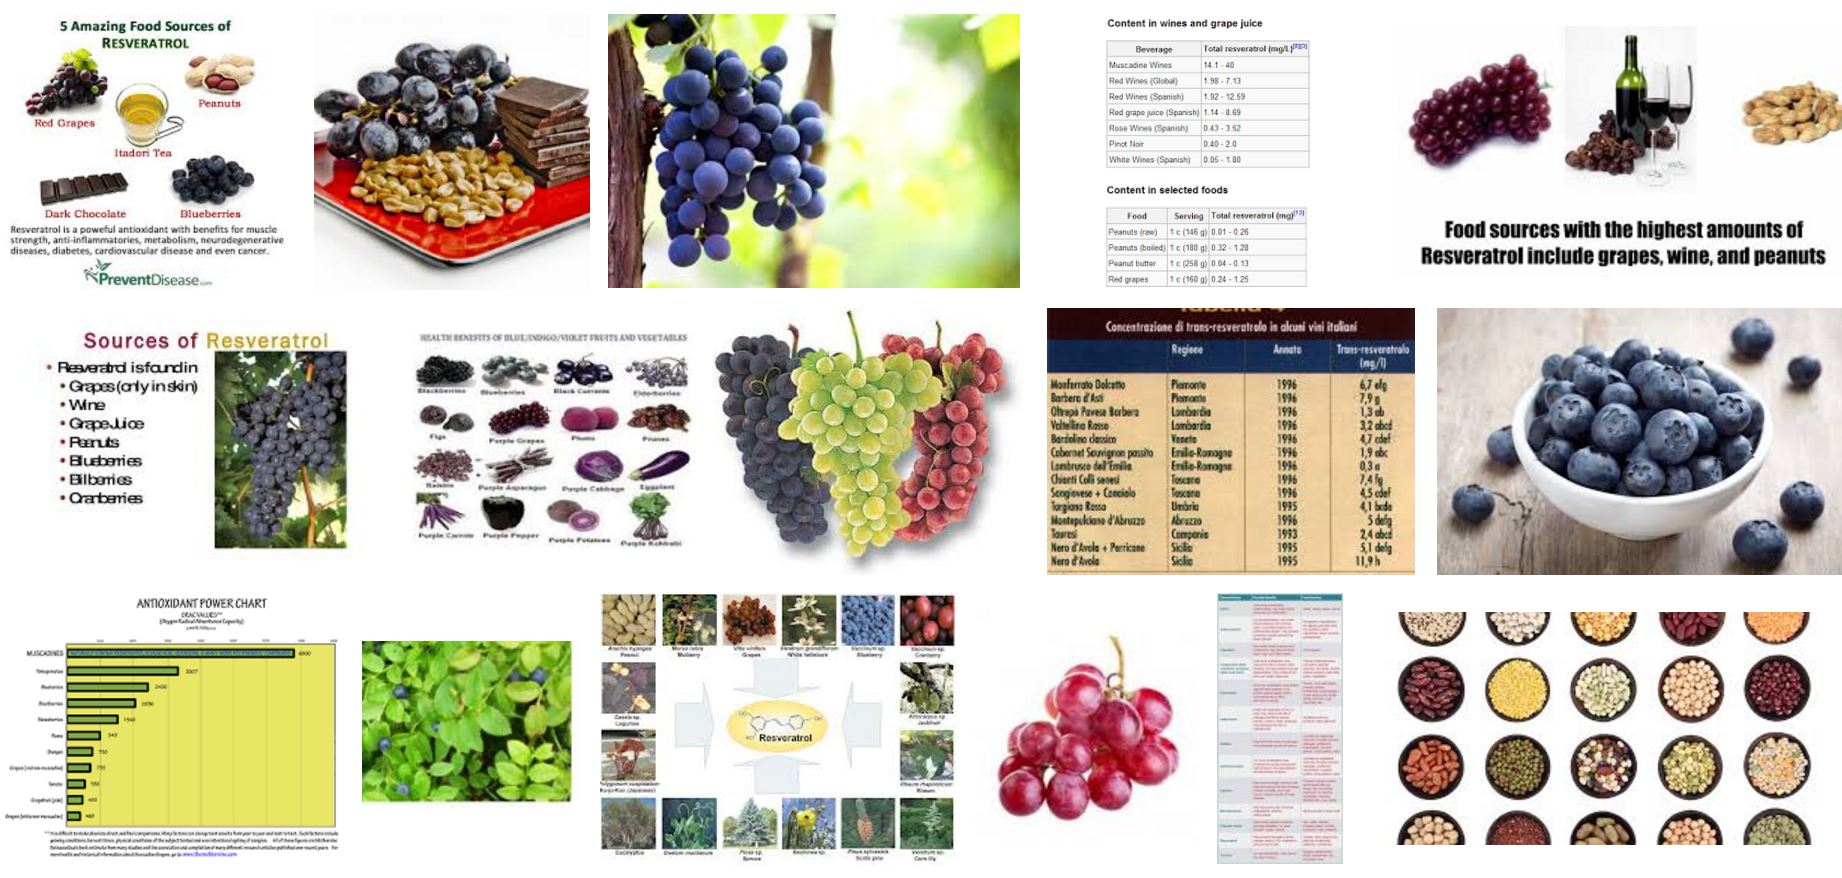 Resveratrol and calorie restriction activates SIRT1 , anti